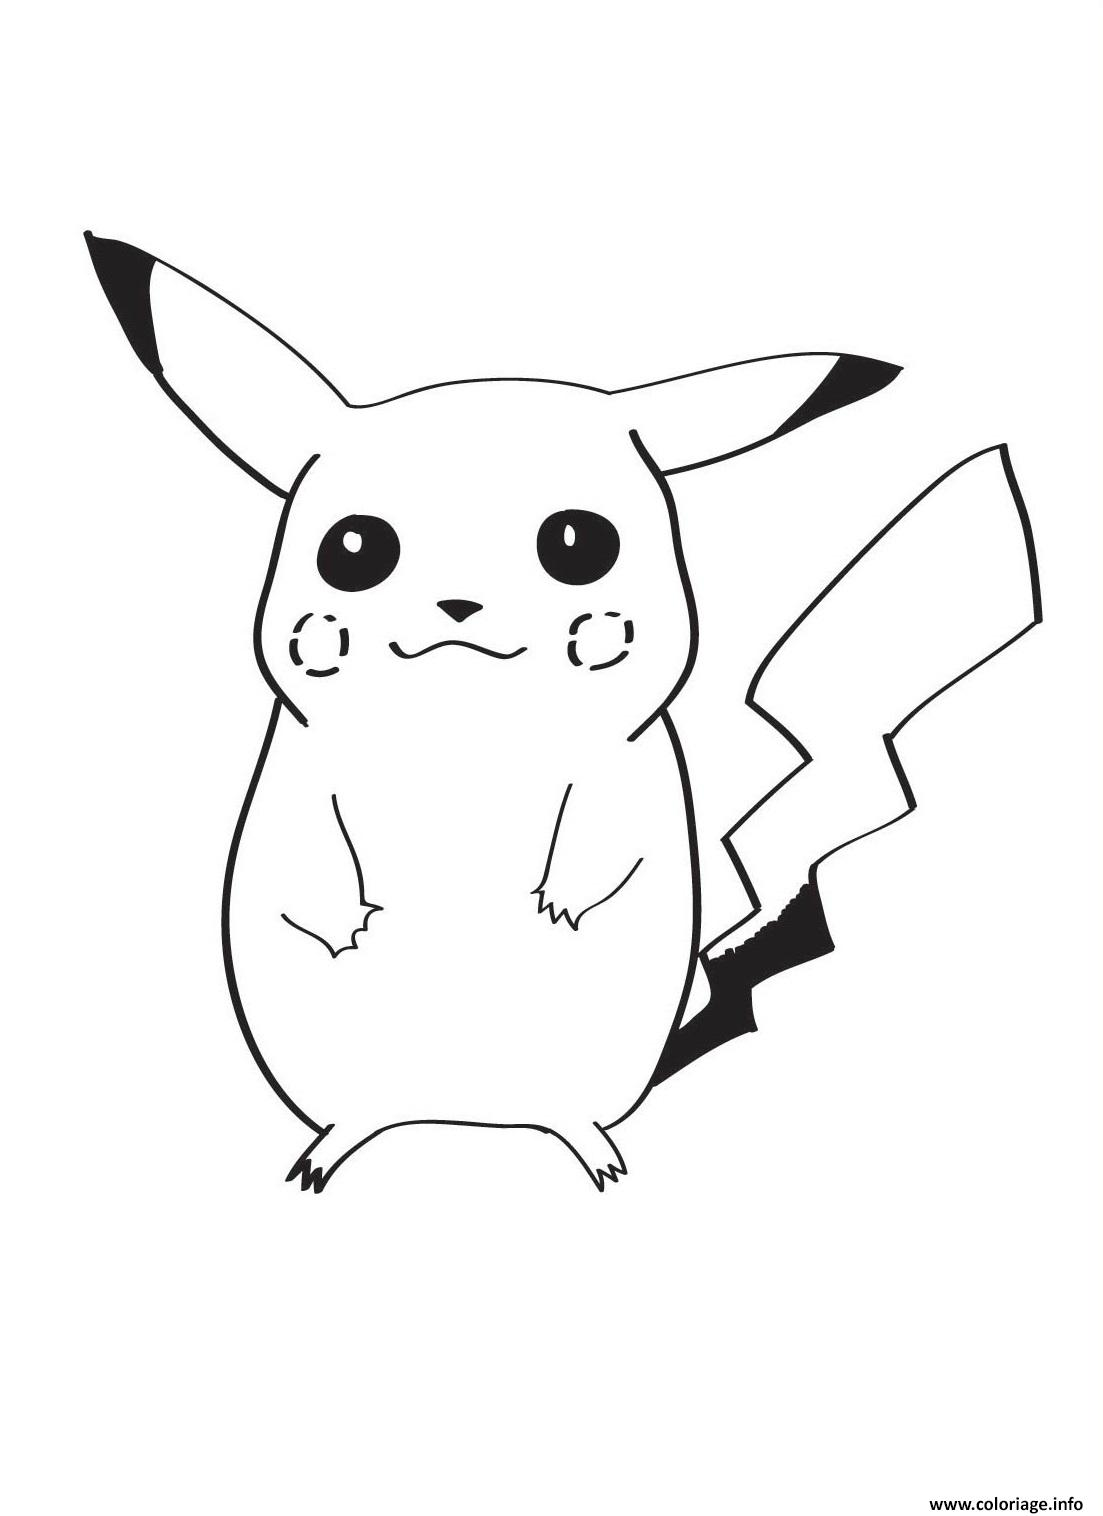 Coloriage pikachu dessin - Dessiner pokemon ...